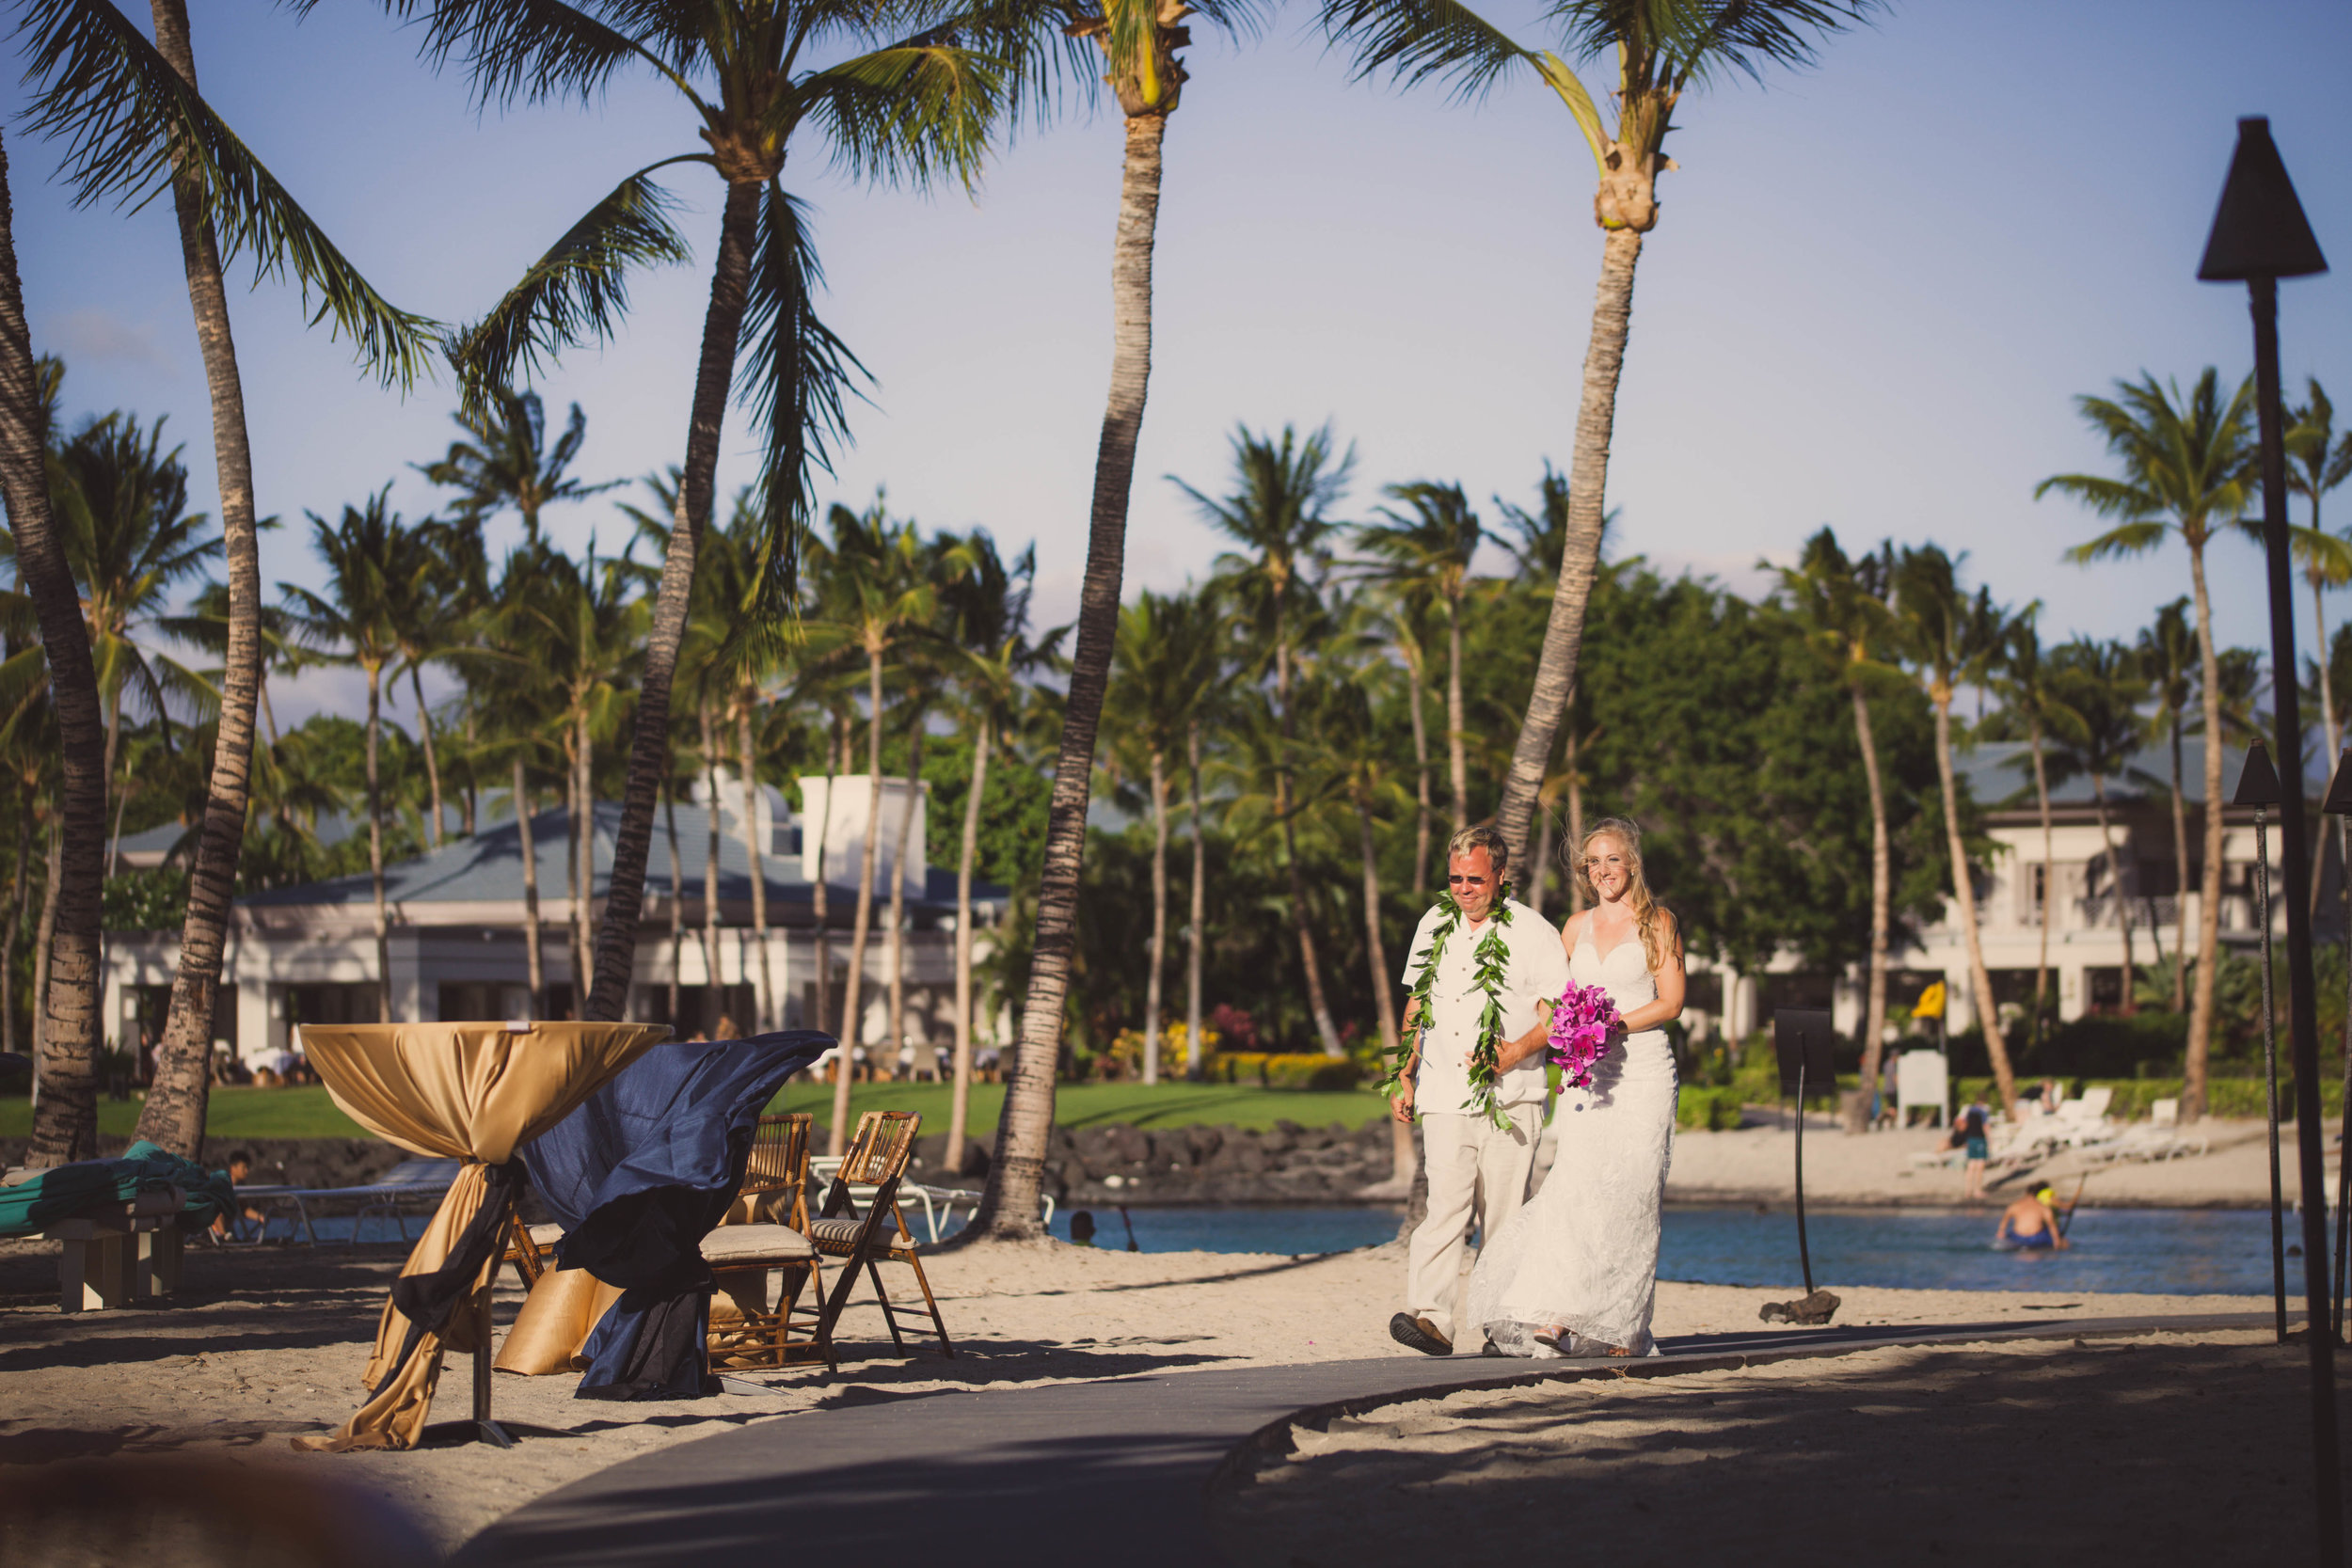 big island hawaii fairmont orchid beach wedding © kelilina photography 20170812173513-1.jpg